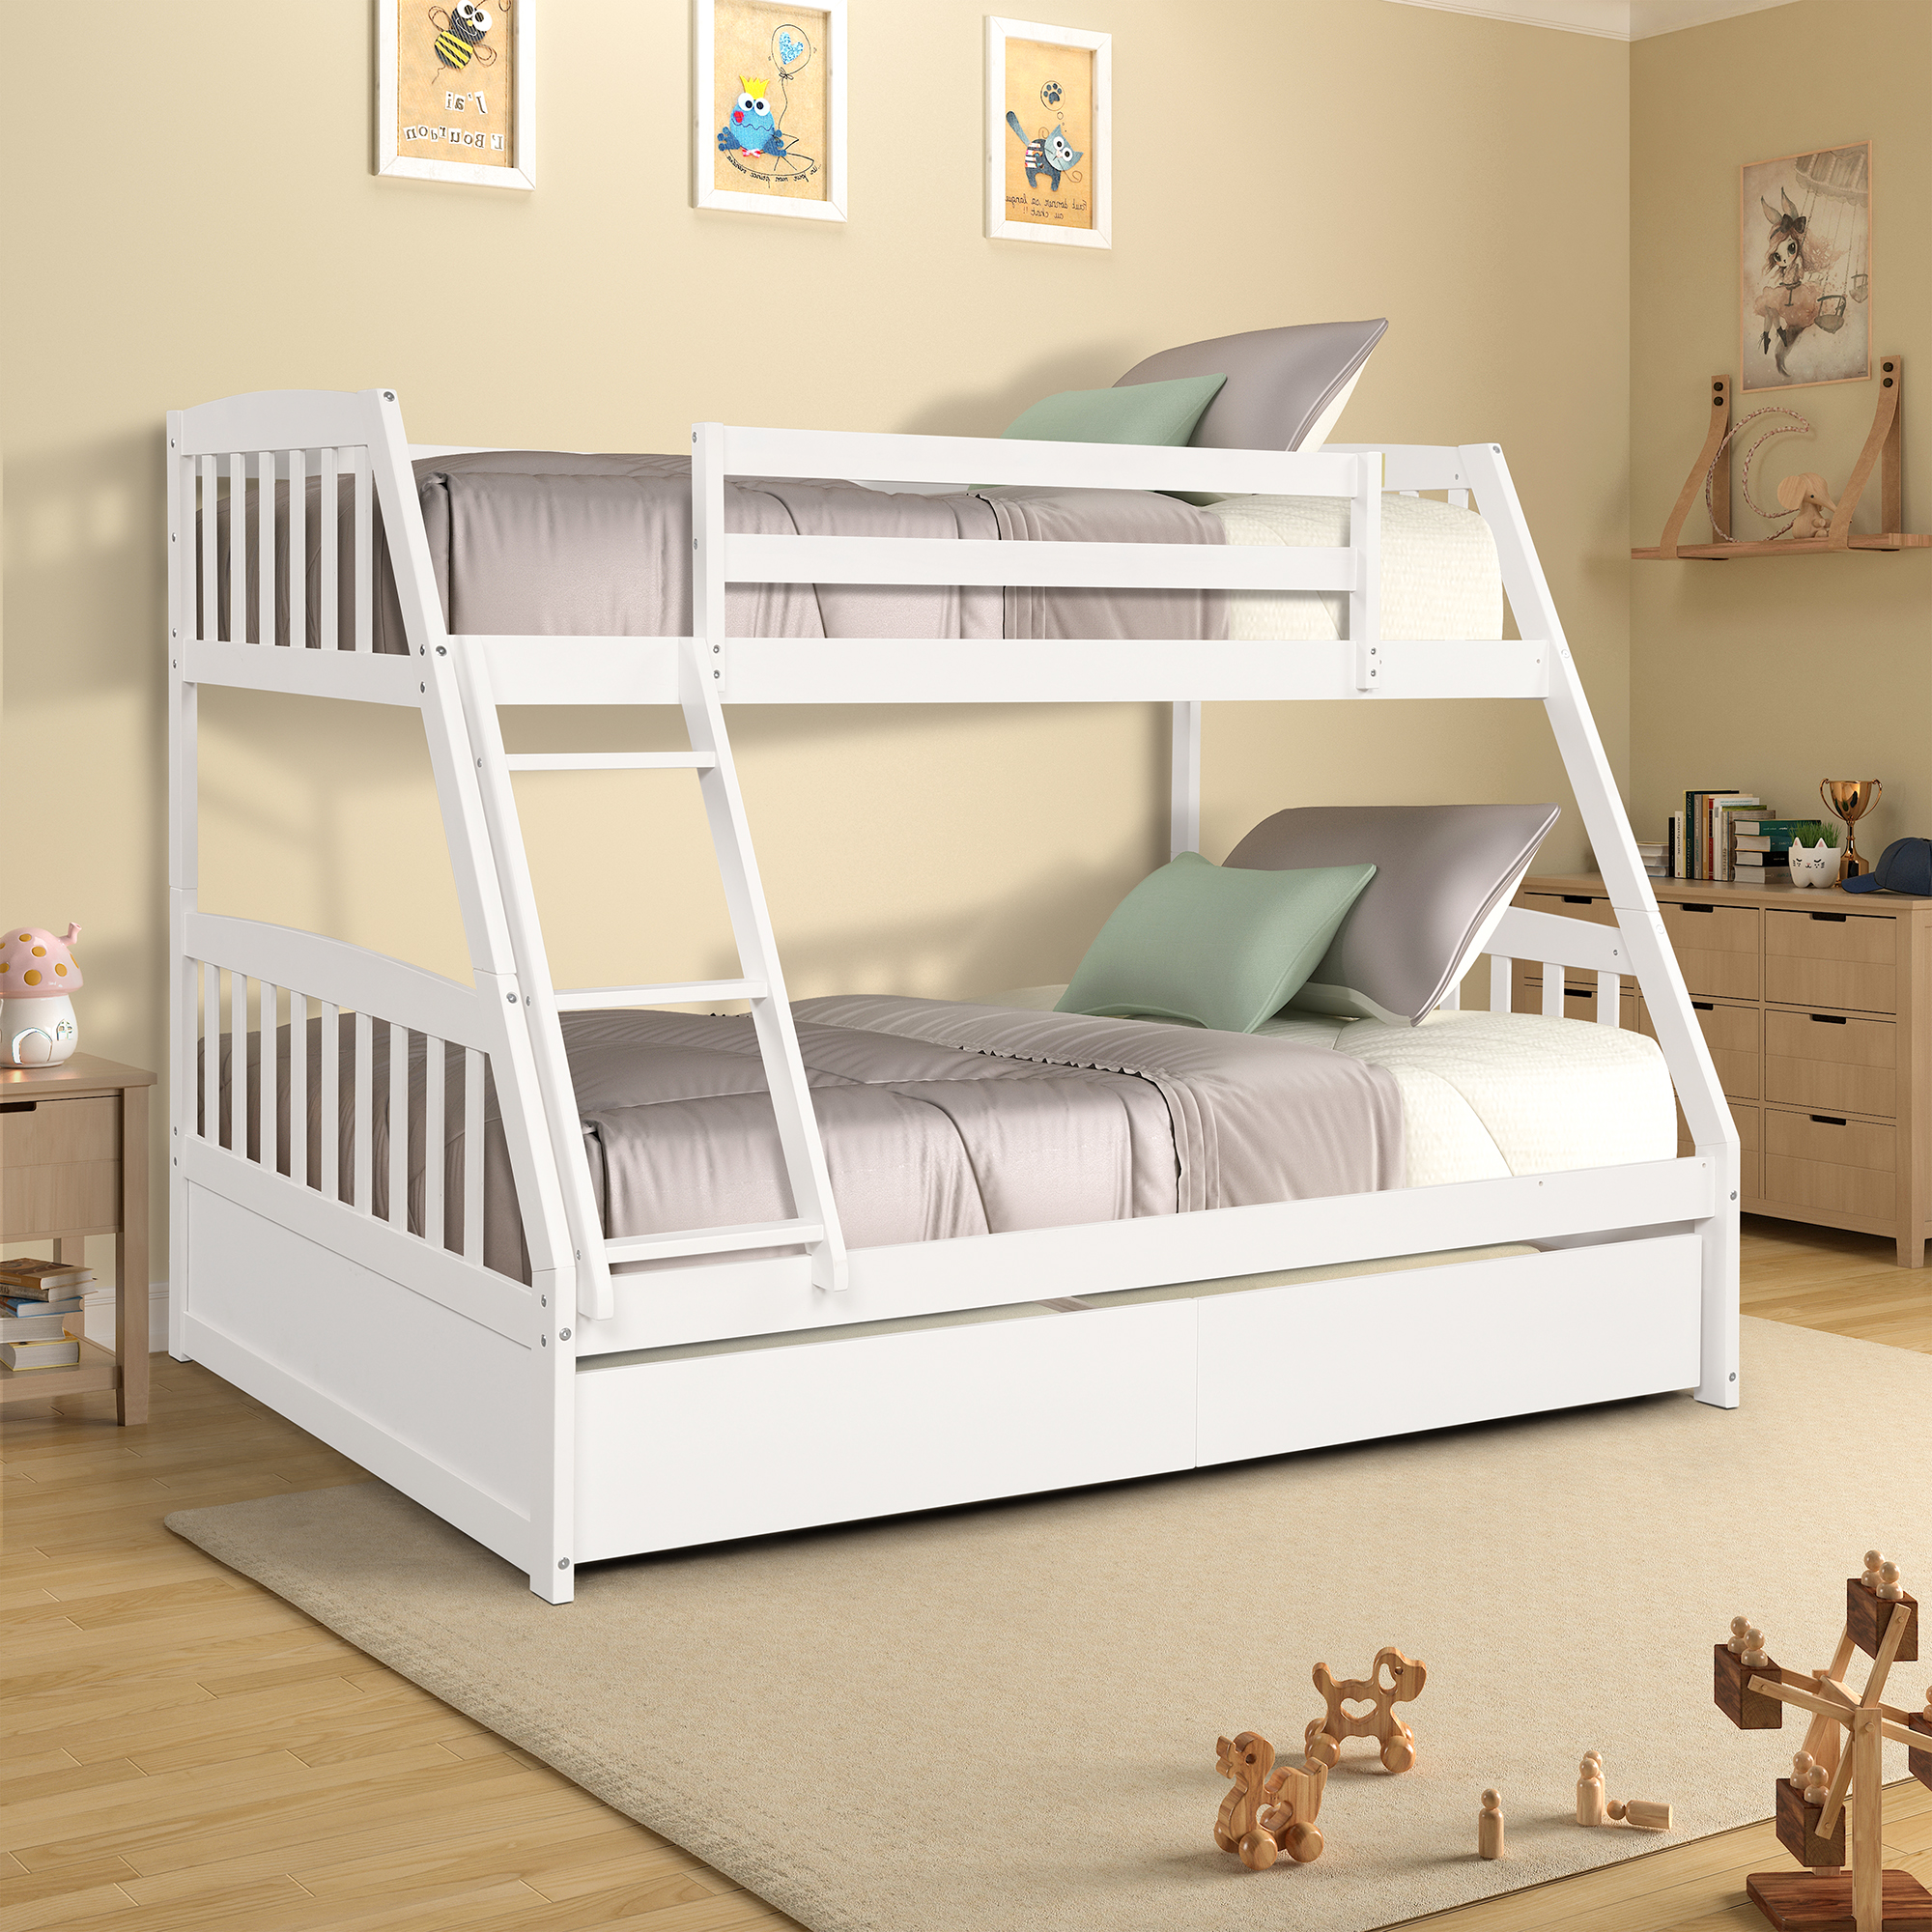 12 Off Solid Wood Twin Over Full Bunk Bed With Two Storage Drawers White Gqkipiwa3